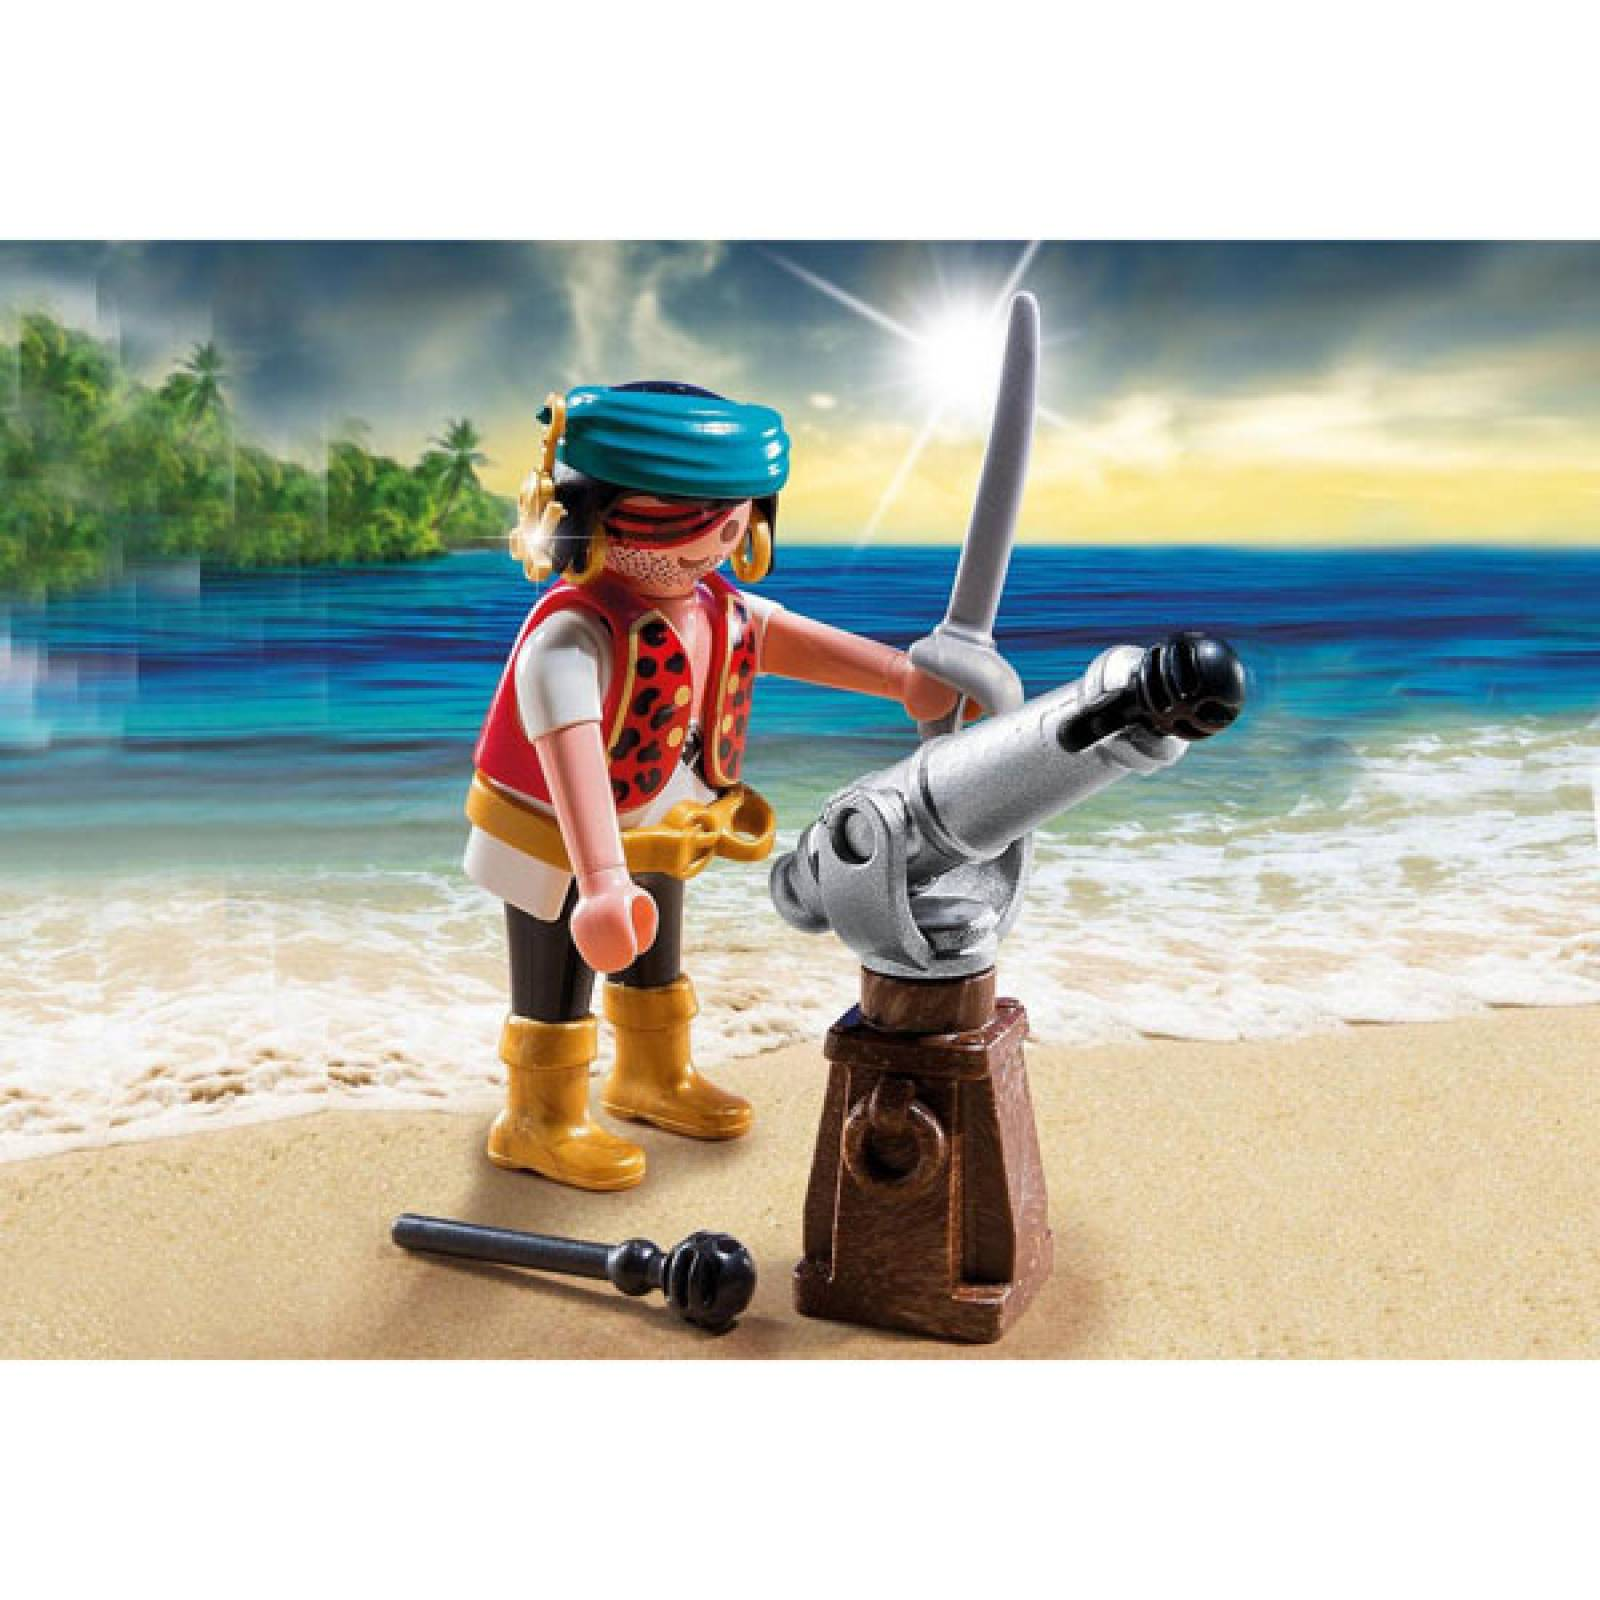 Pirate With Cannon Playmobil 5378 thumbnails